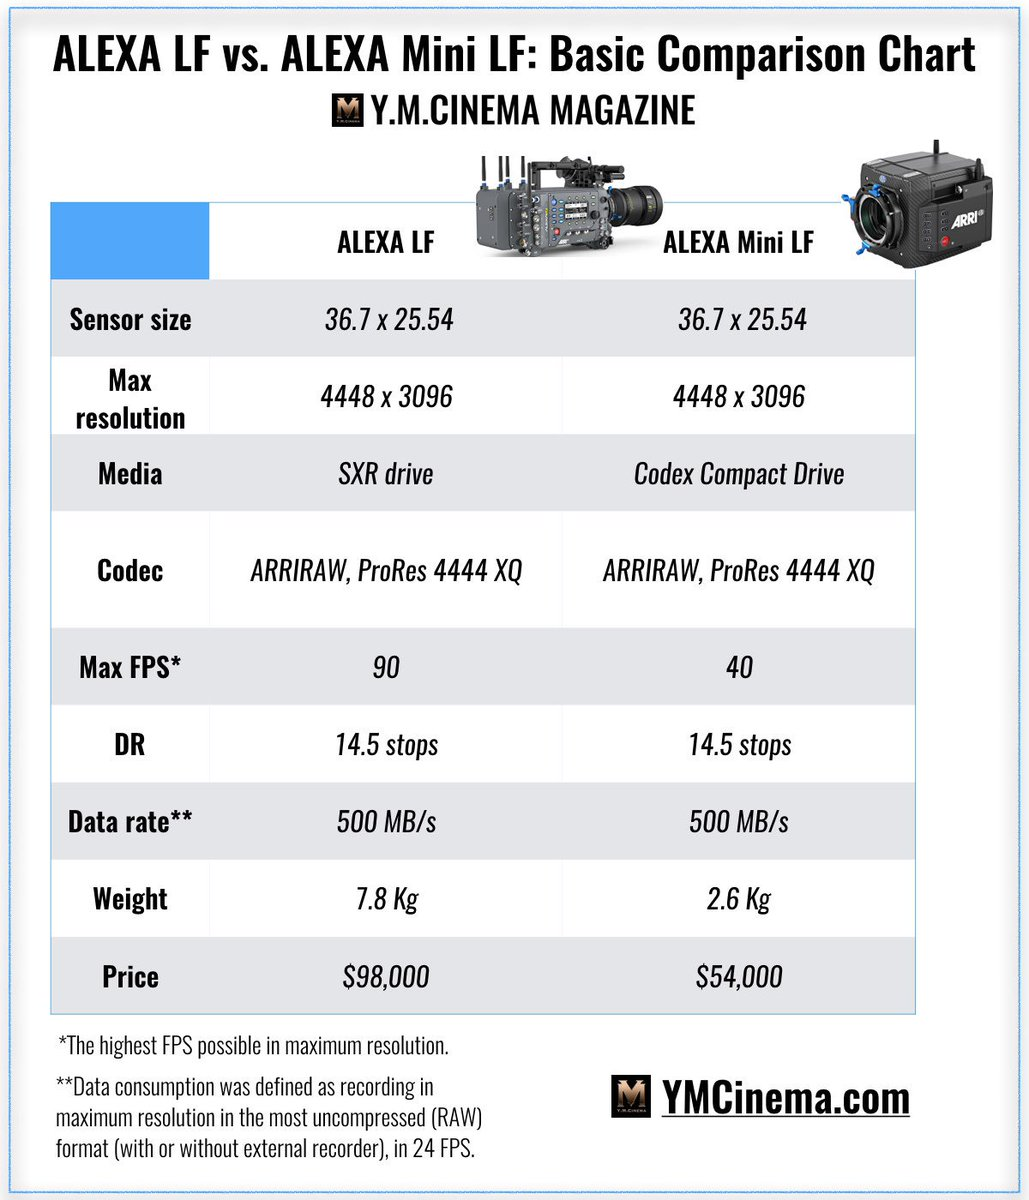 RT @Y_M_Cinema: The ALEXA Mini LF is scheduled to ship from mid-September onwards.